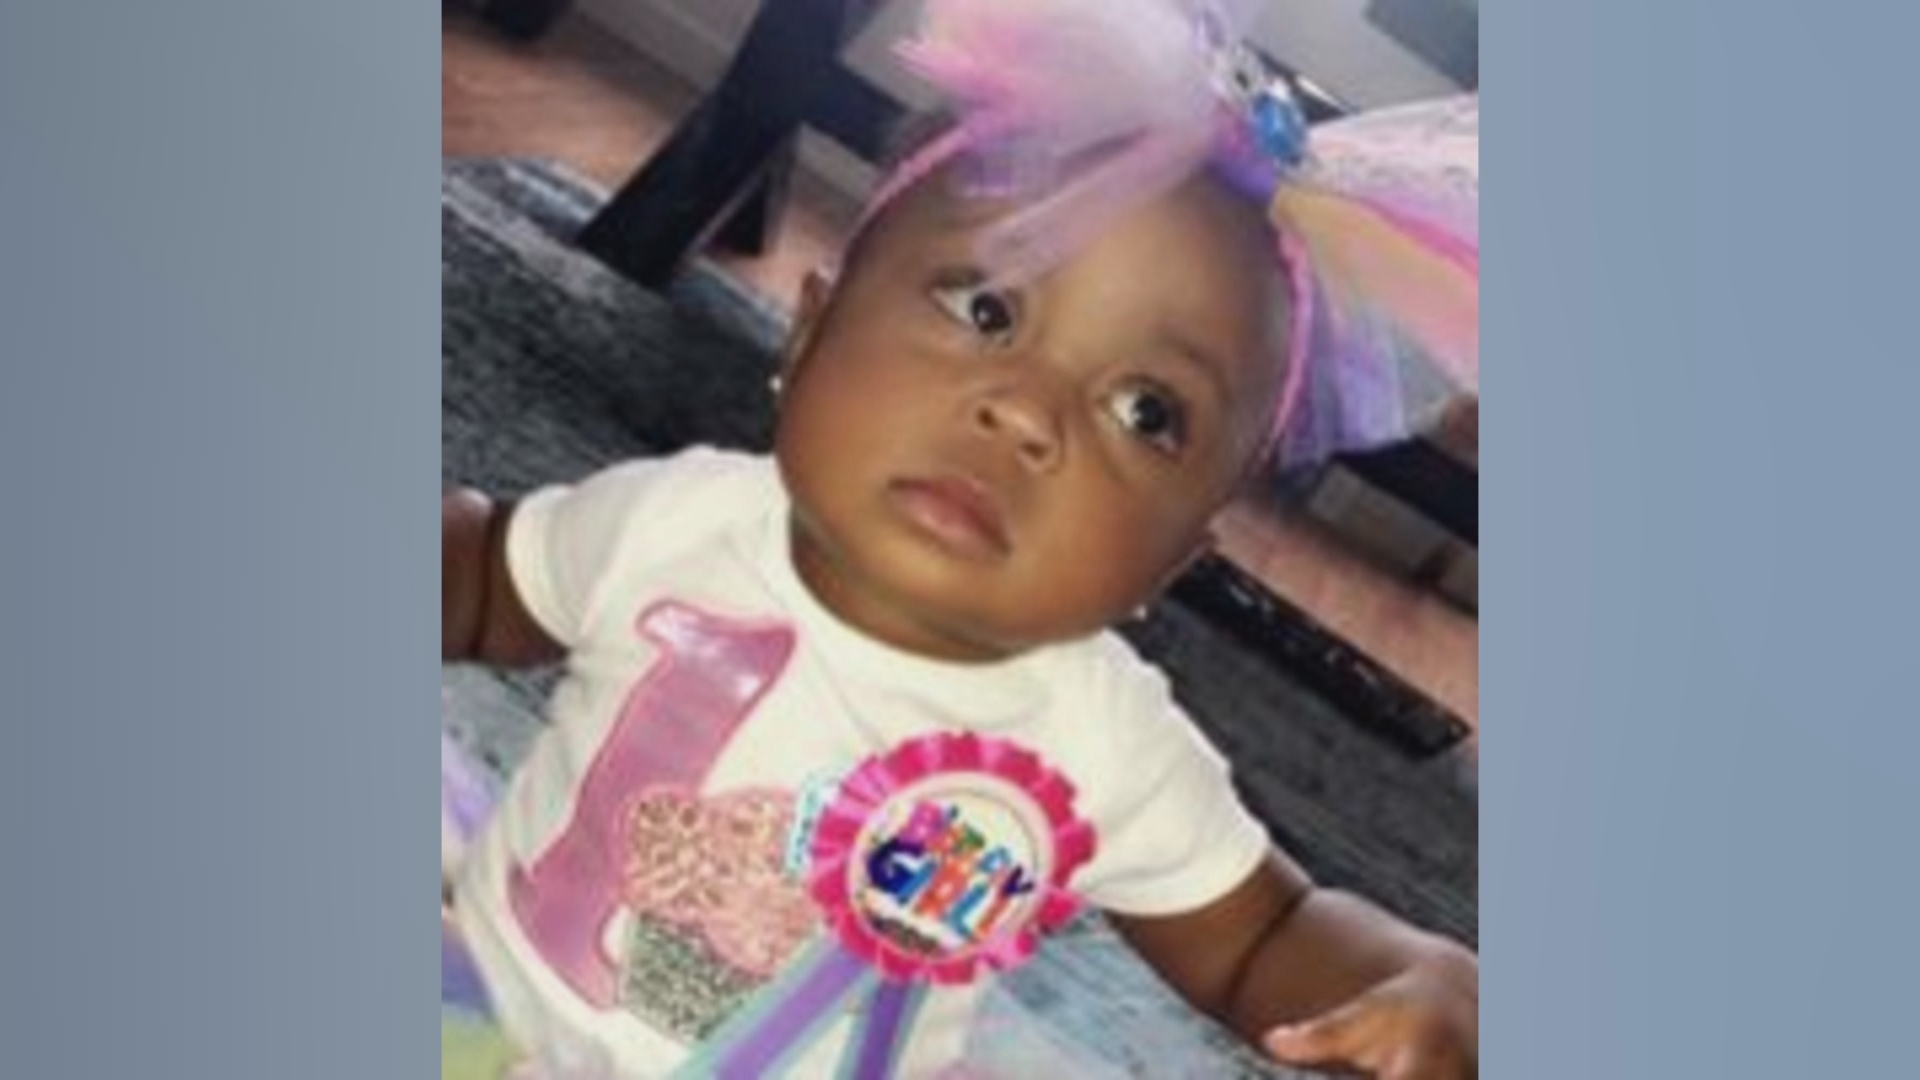 Update Amber Alert Cancelled After Abducted Baby Found Unharmed Suspect In Custody